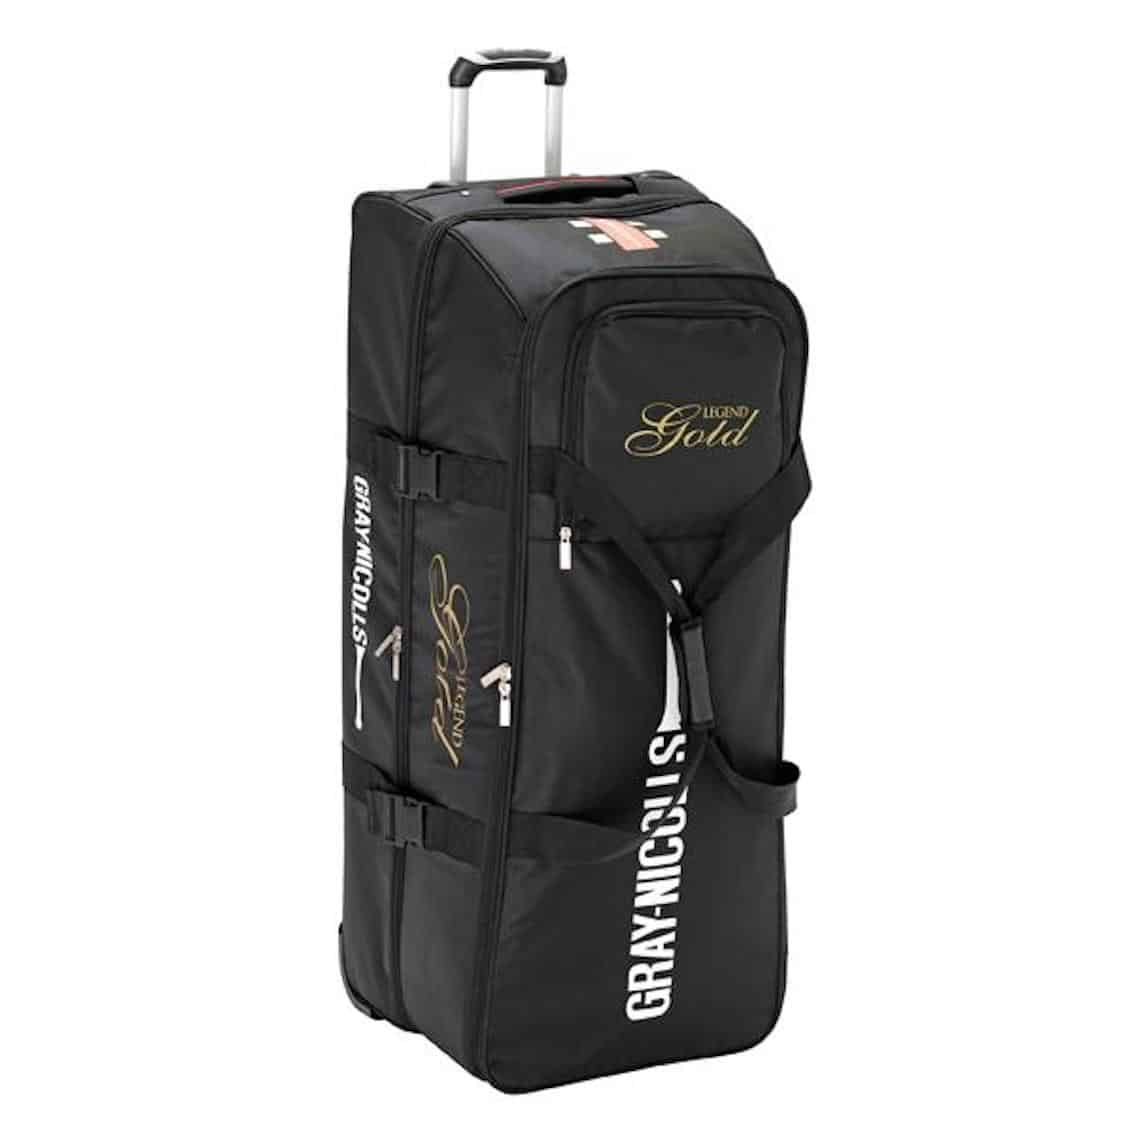 GN Legend Gold cricket Bag